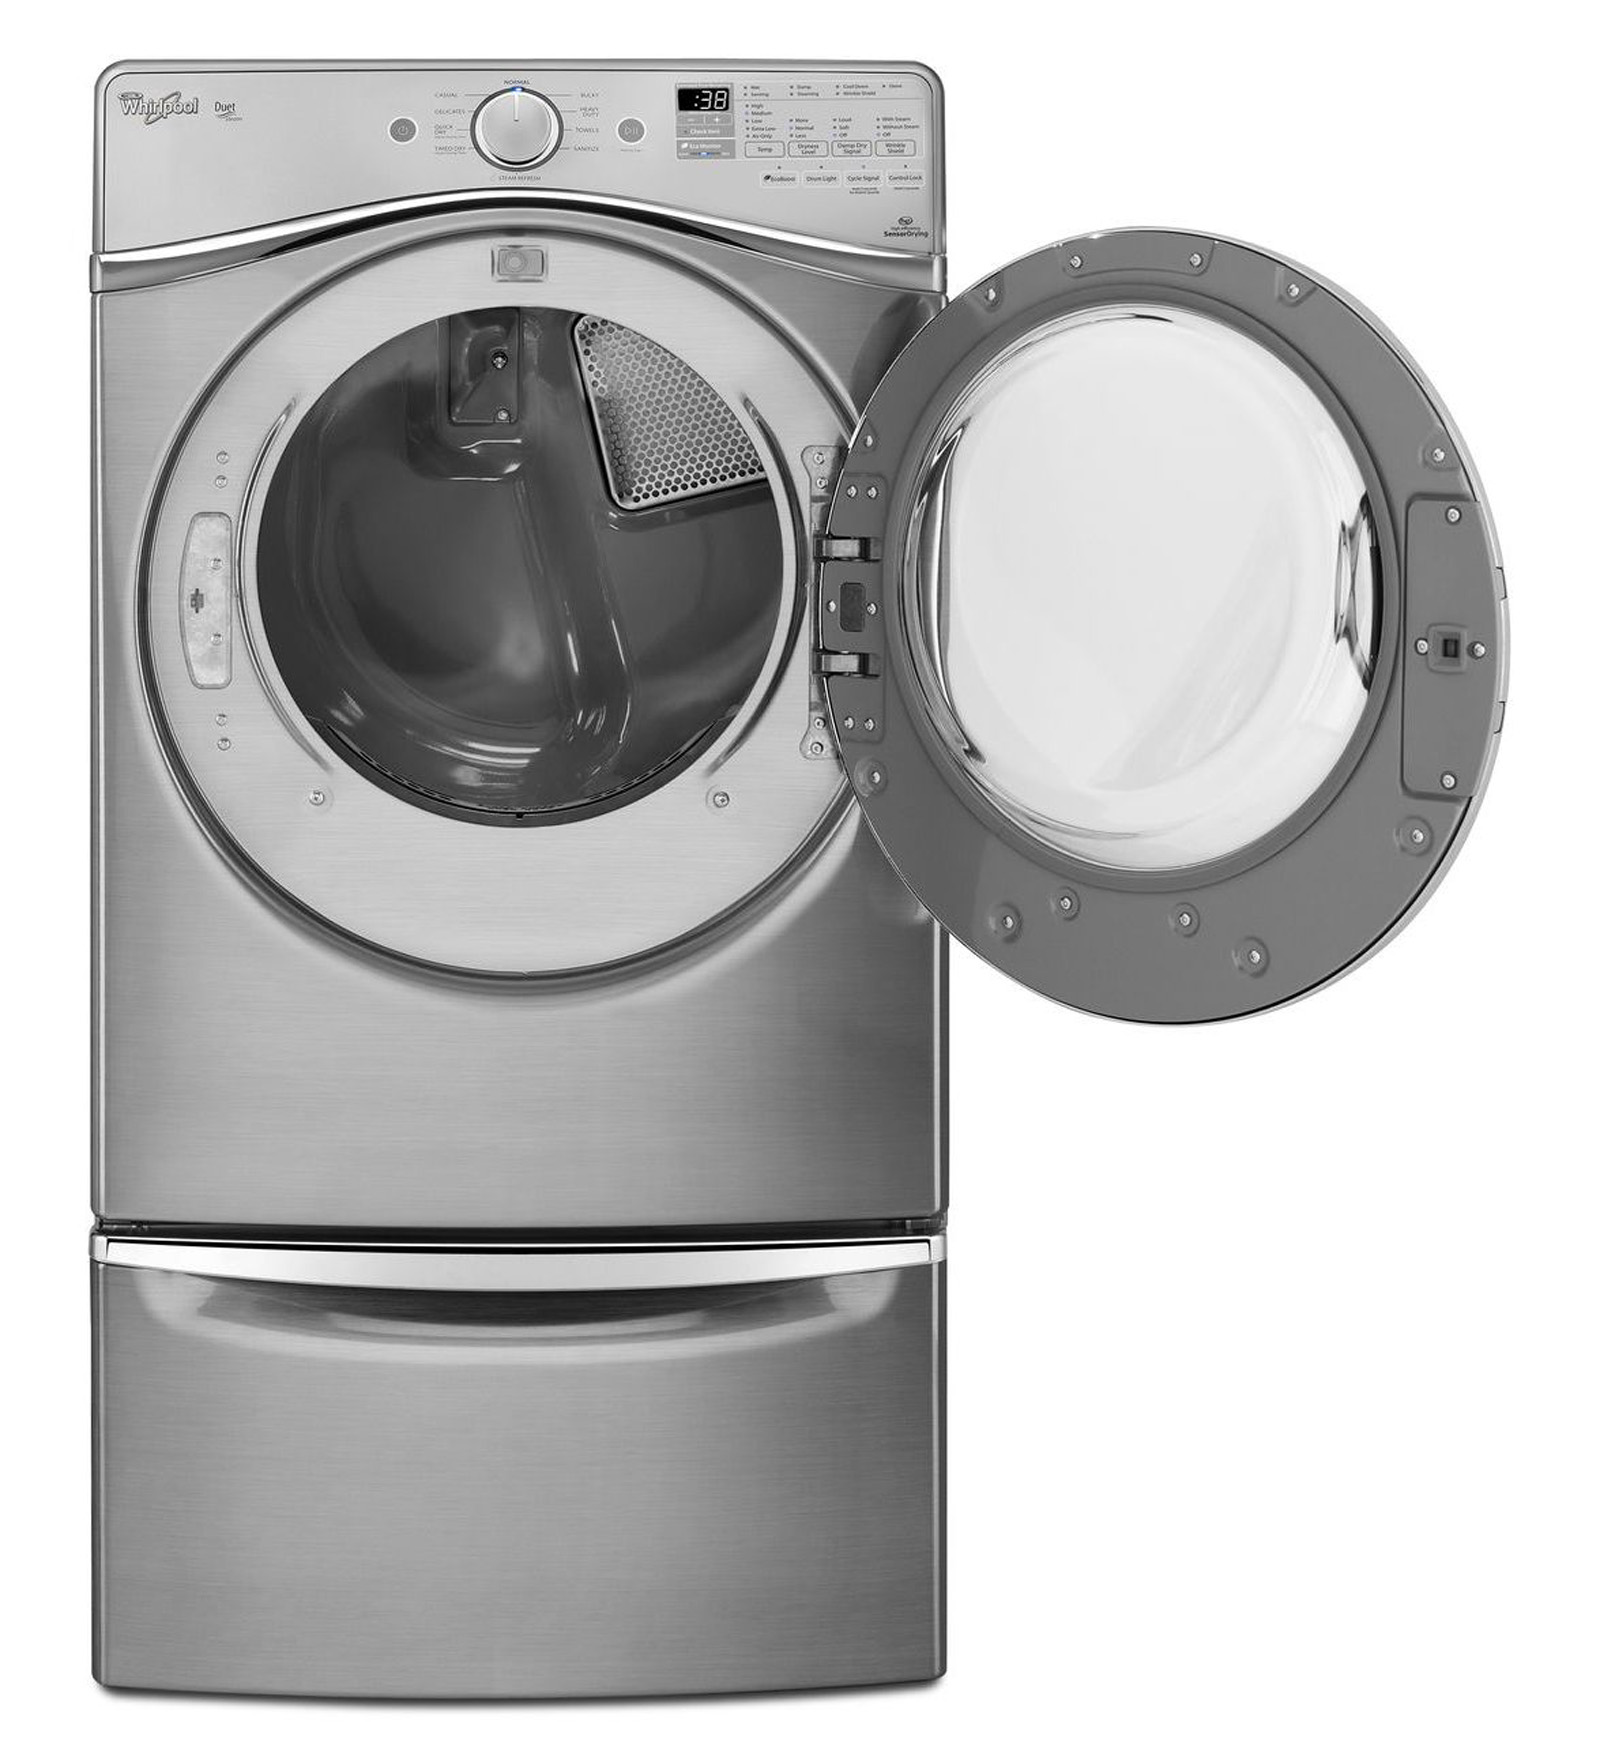 Whirlpool WED95HEDC 7.4 cu. ft. Duet® Electric Dryer - Chrome Shadow